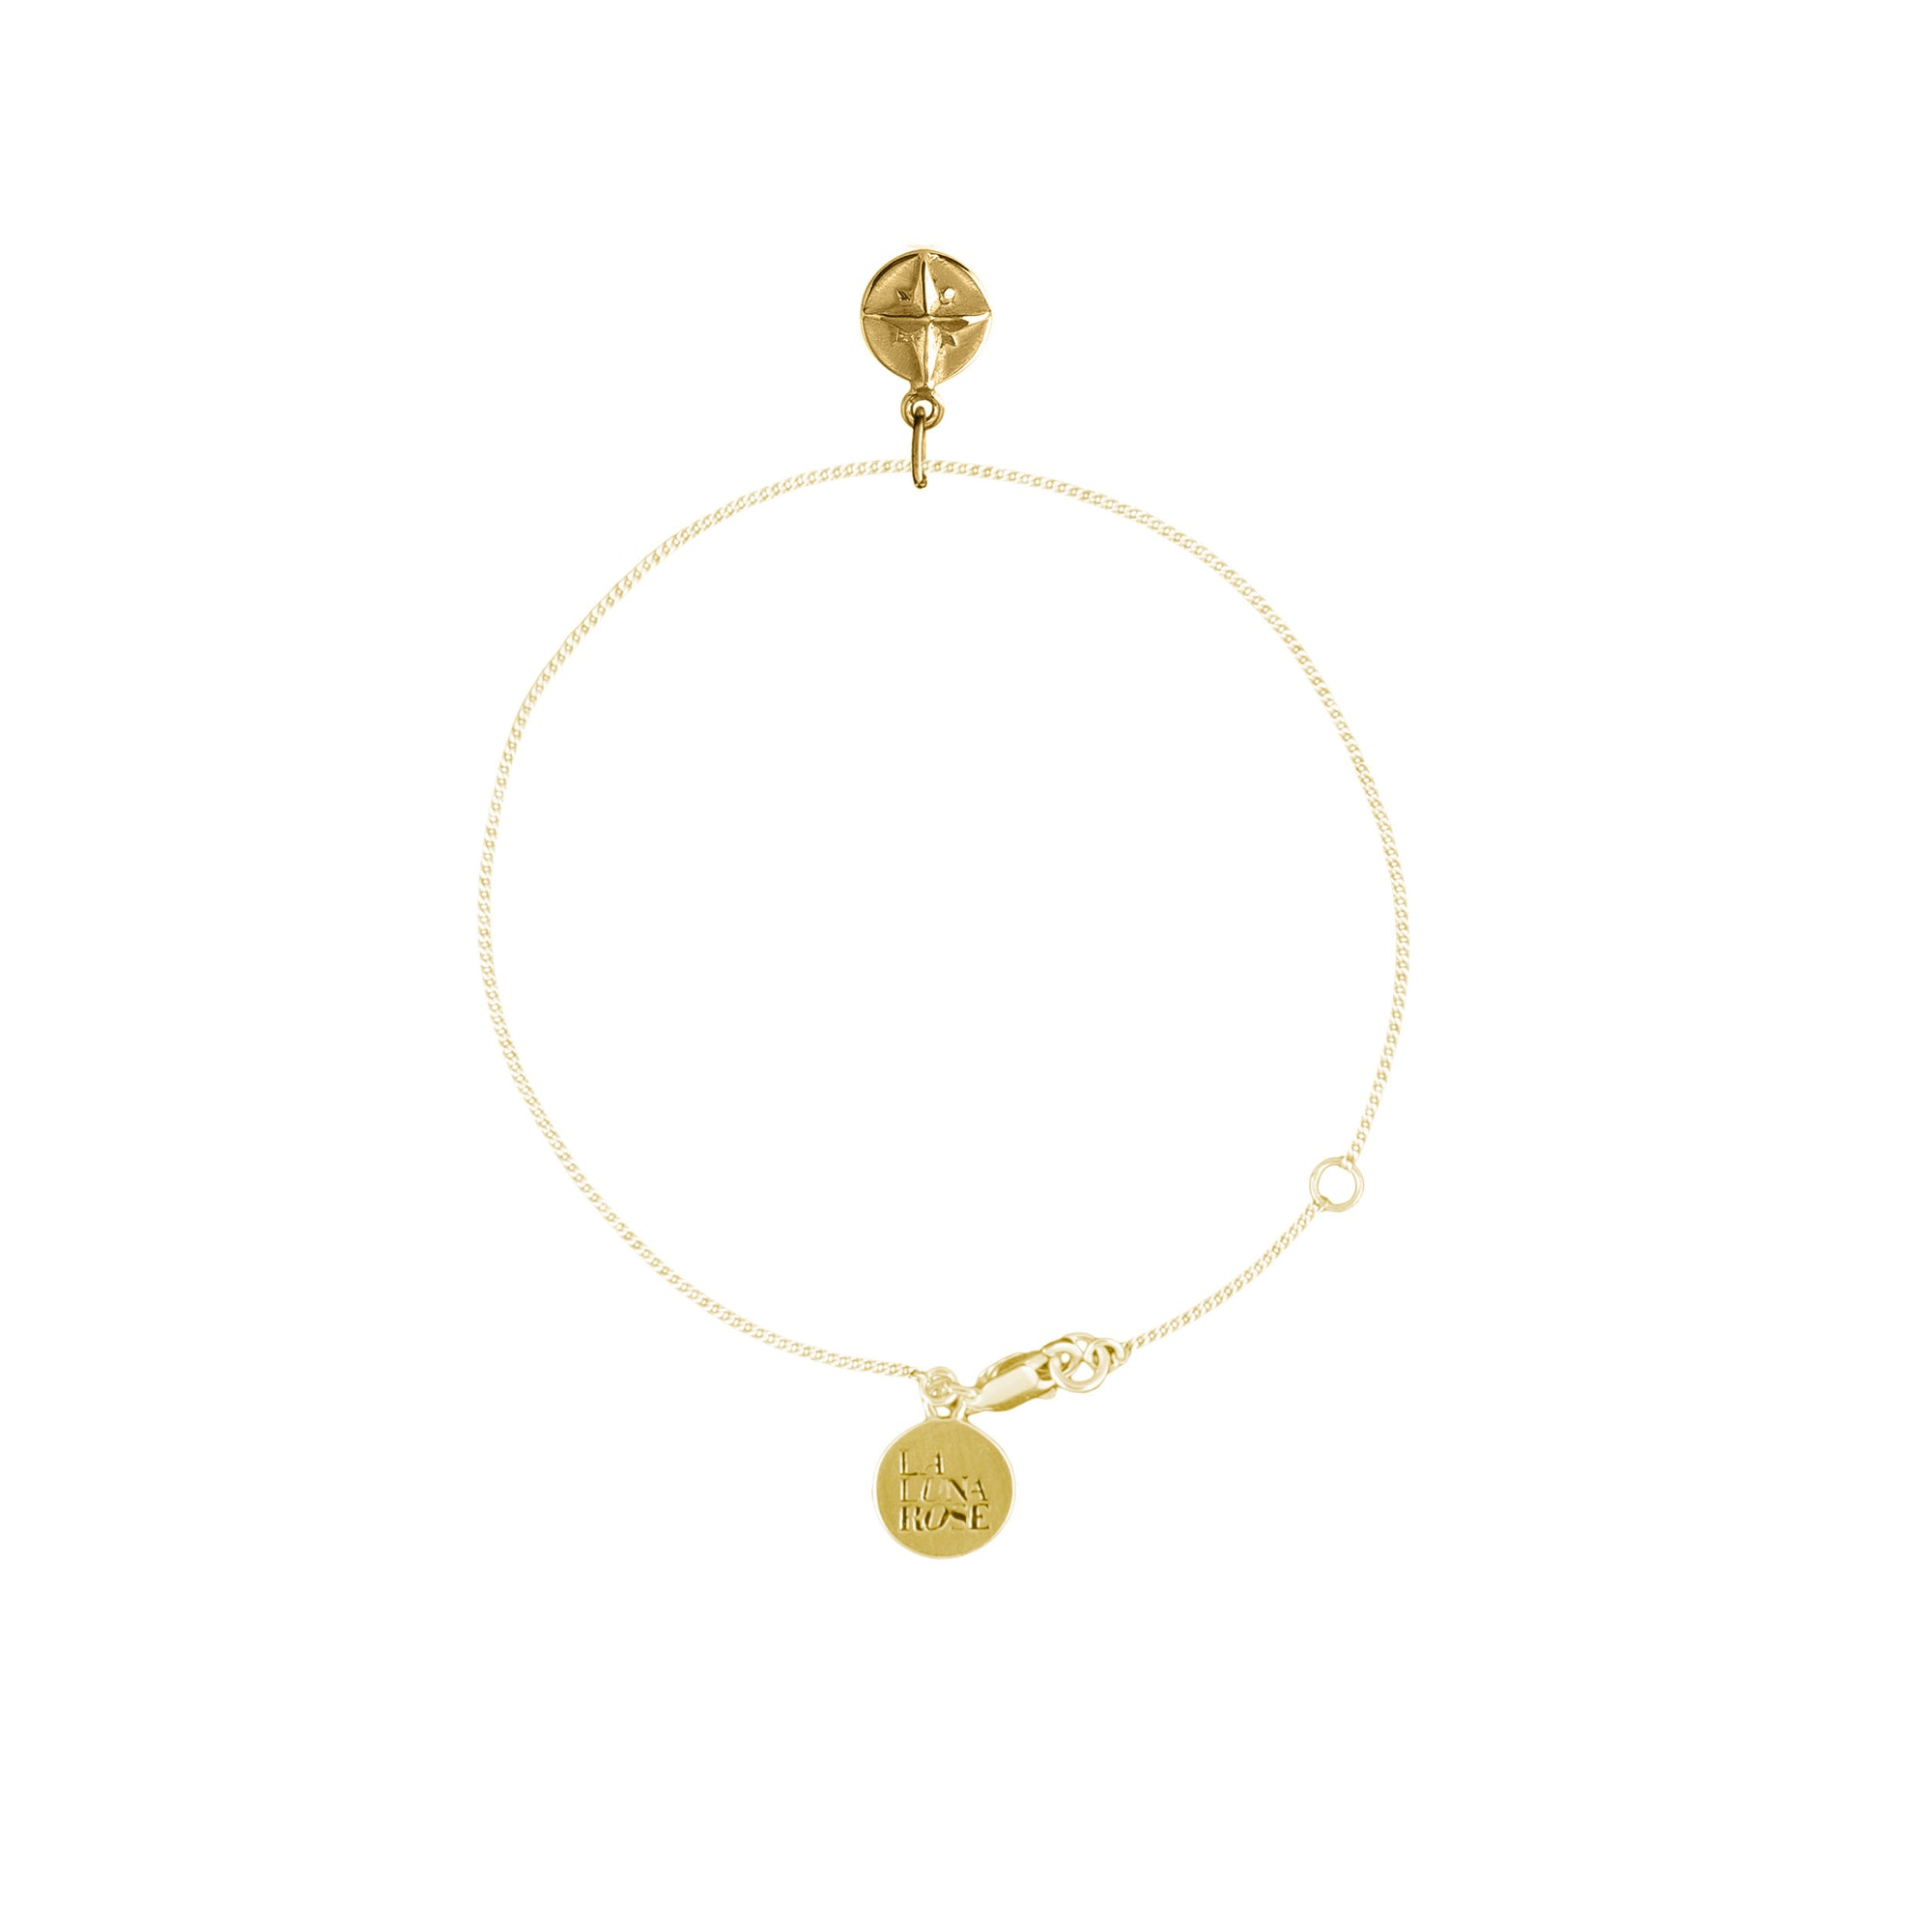 Born to roam Bracelet (Gold)